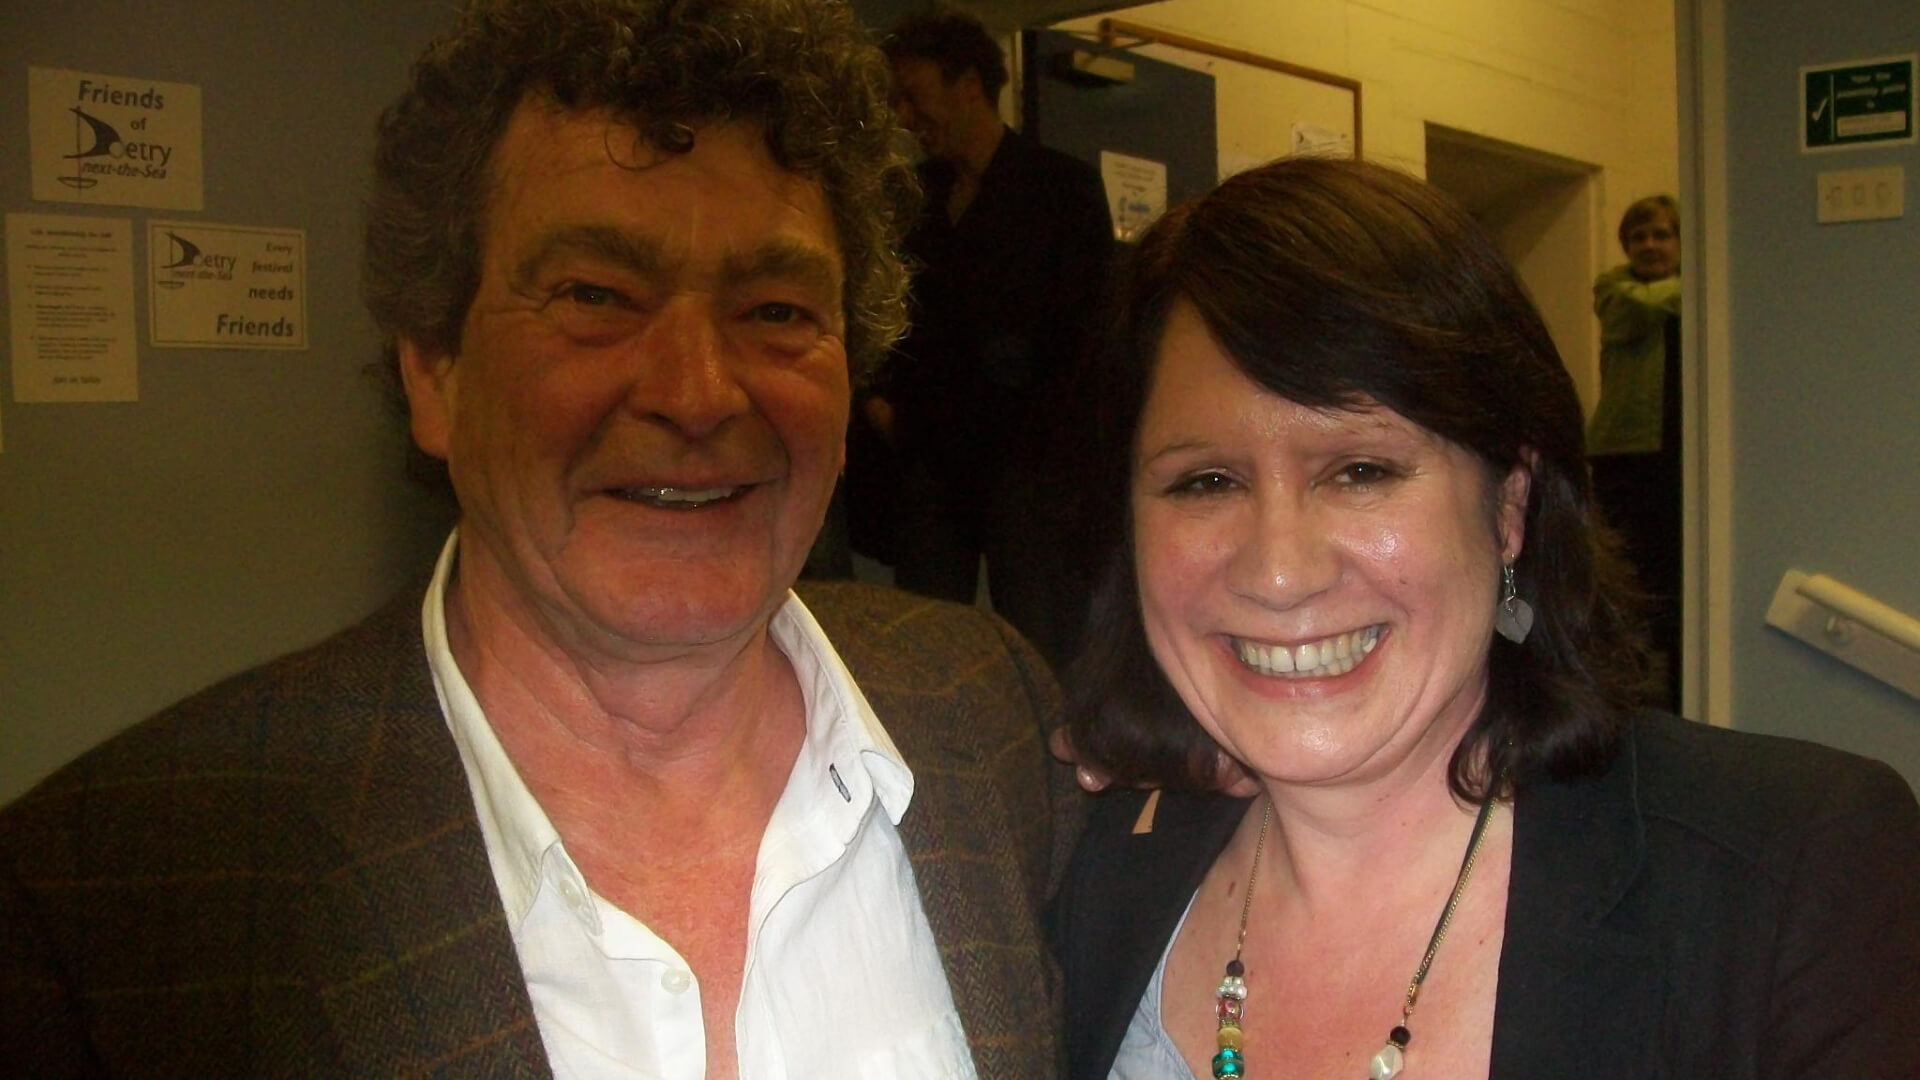 Meeting the wonderful Liverpool poet Brian Patten  at Bradford Lit Fest